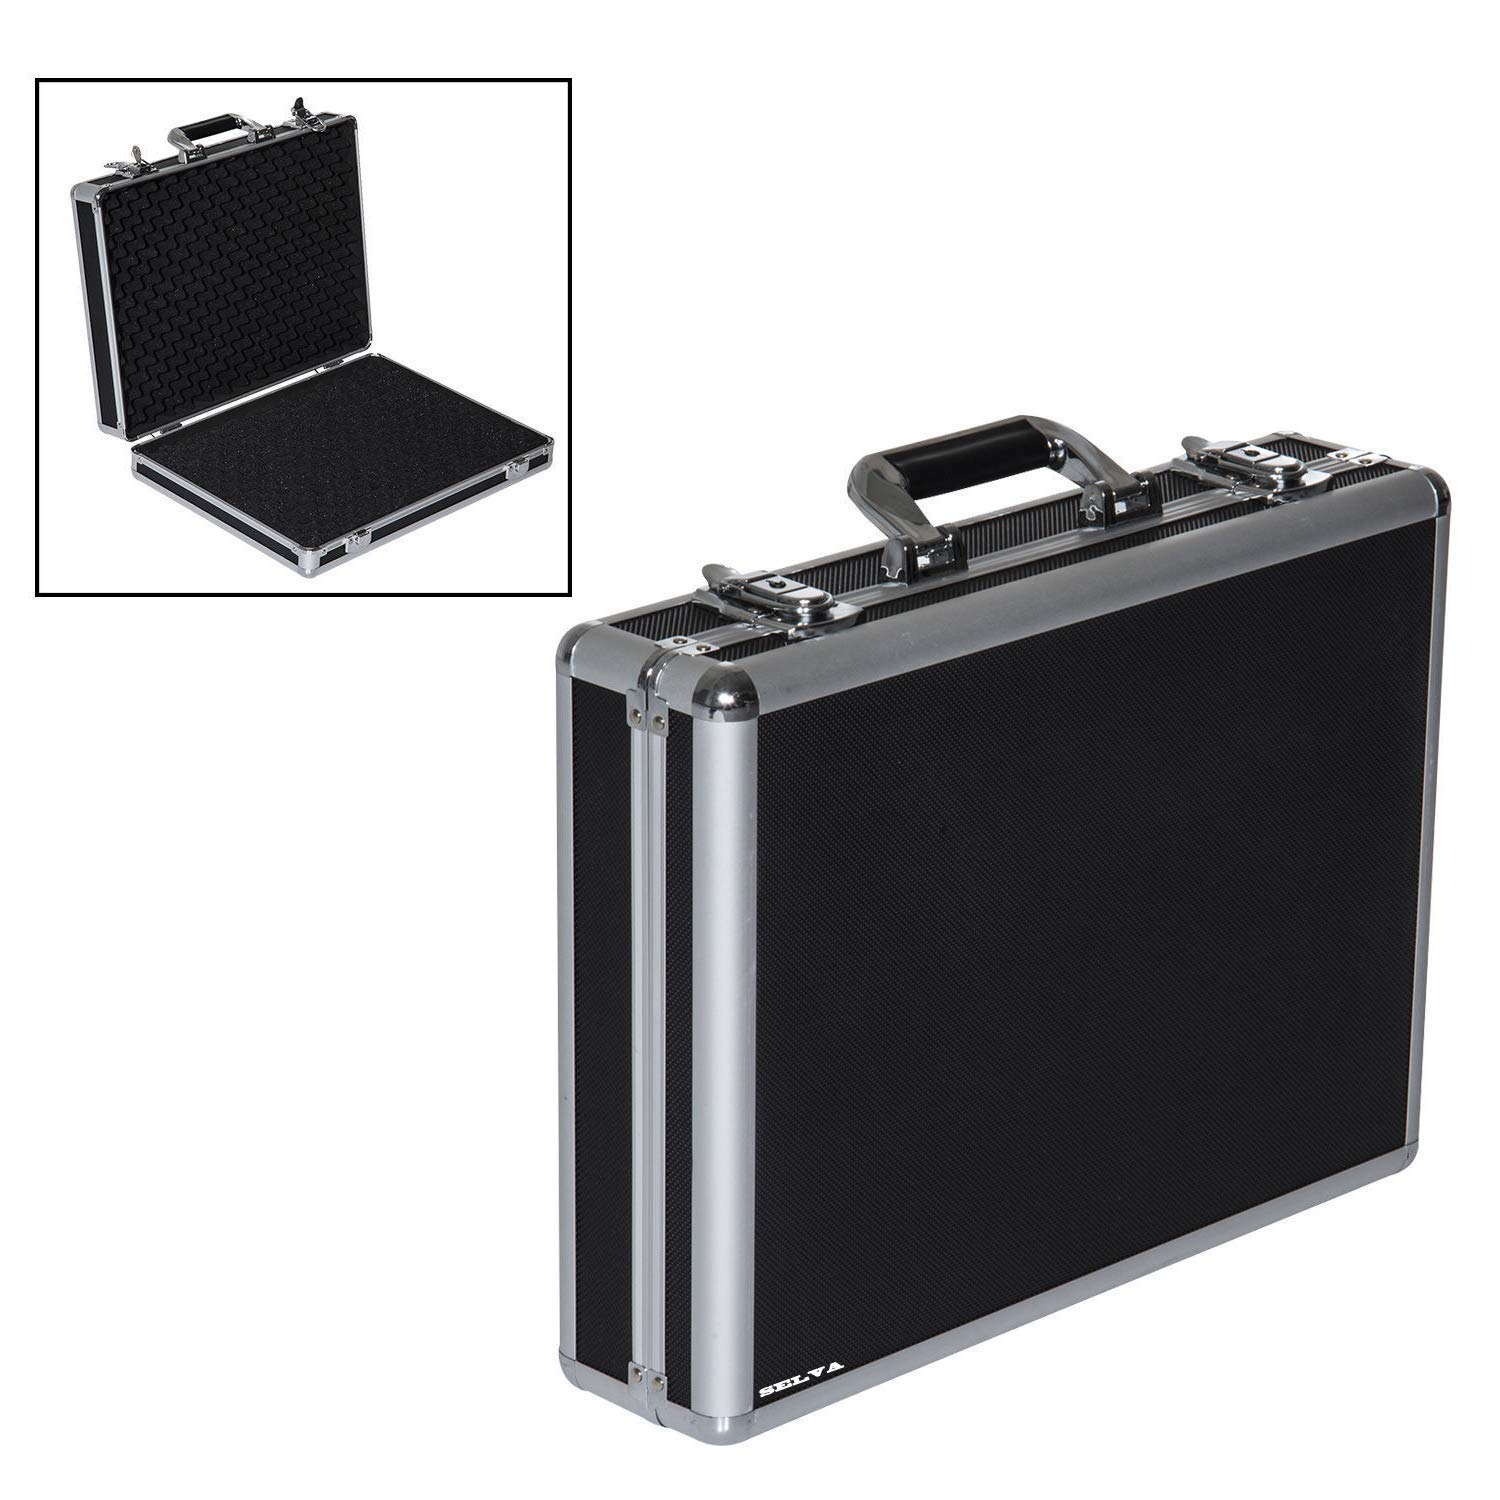 Selva Premium Aluminum Framed Gun Case Locking Storage Box - Black | for 4 Pistol Handgun Weapon | Approved Firearm Safety Container | Heavy Duty Light Weight with High Density Foam Padded Interior